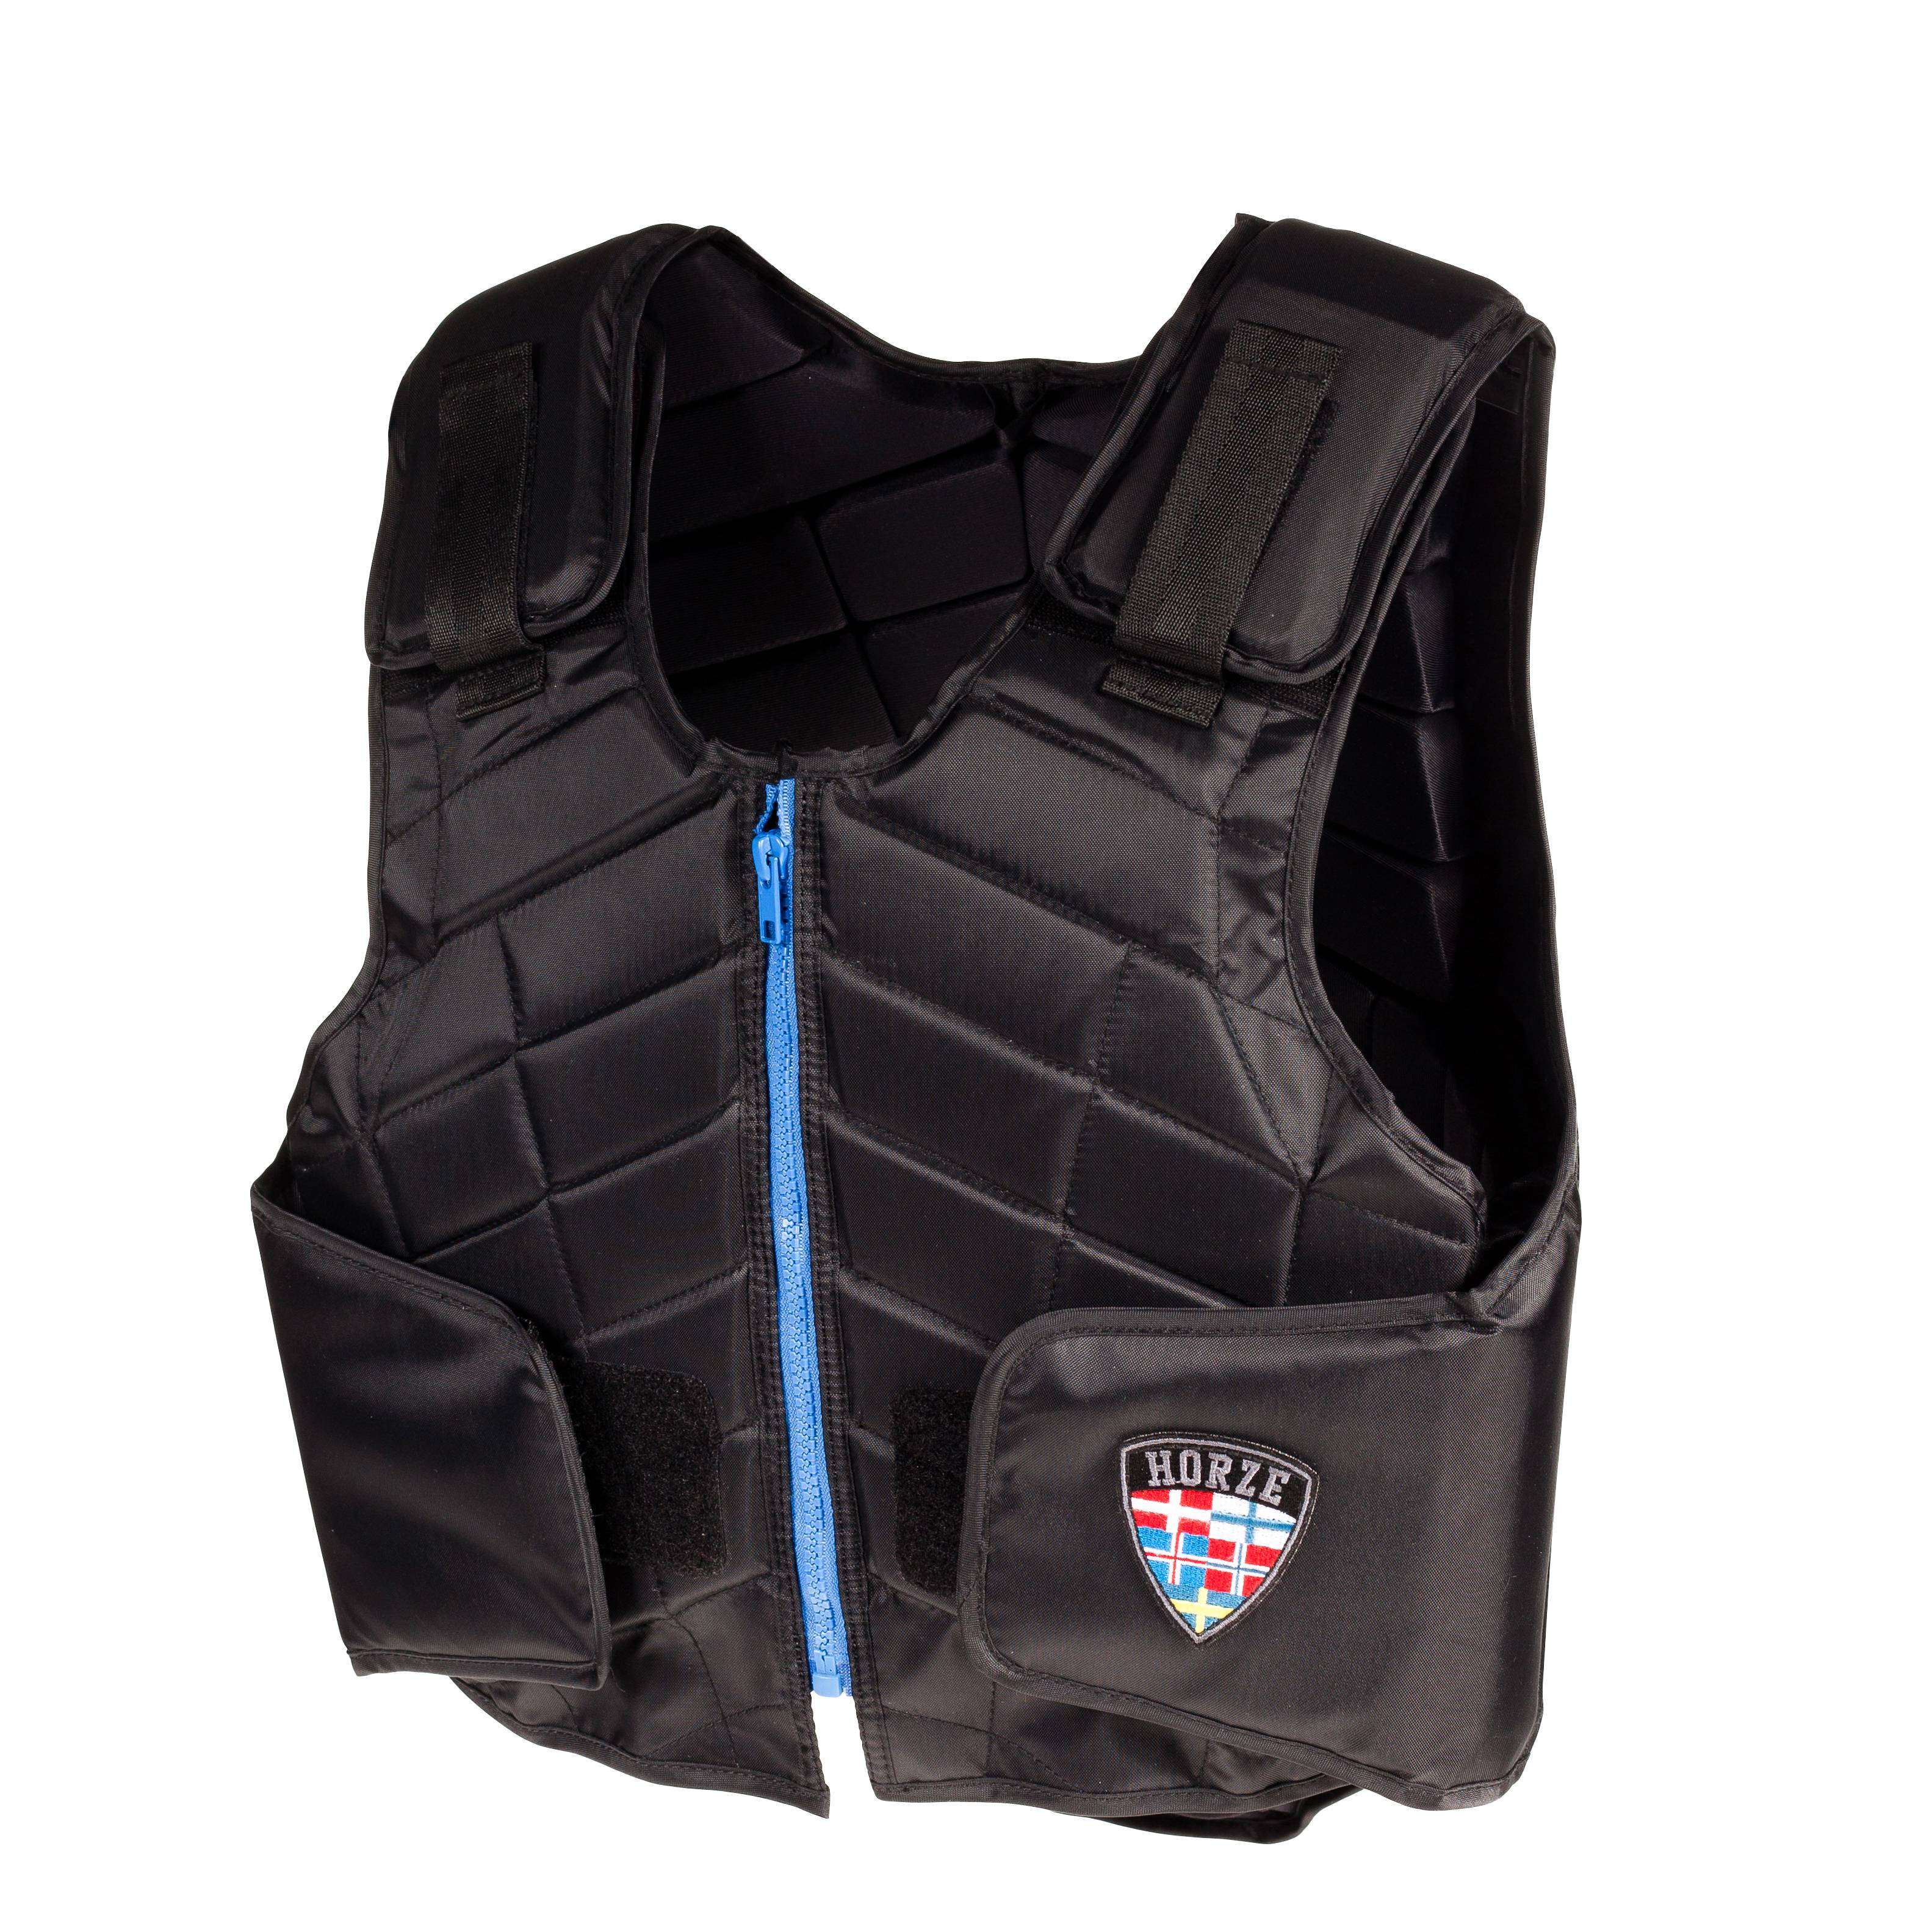 HorZe Jason Childrens Body Protector